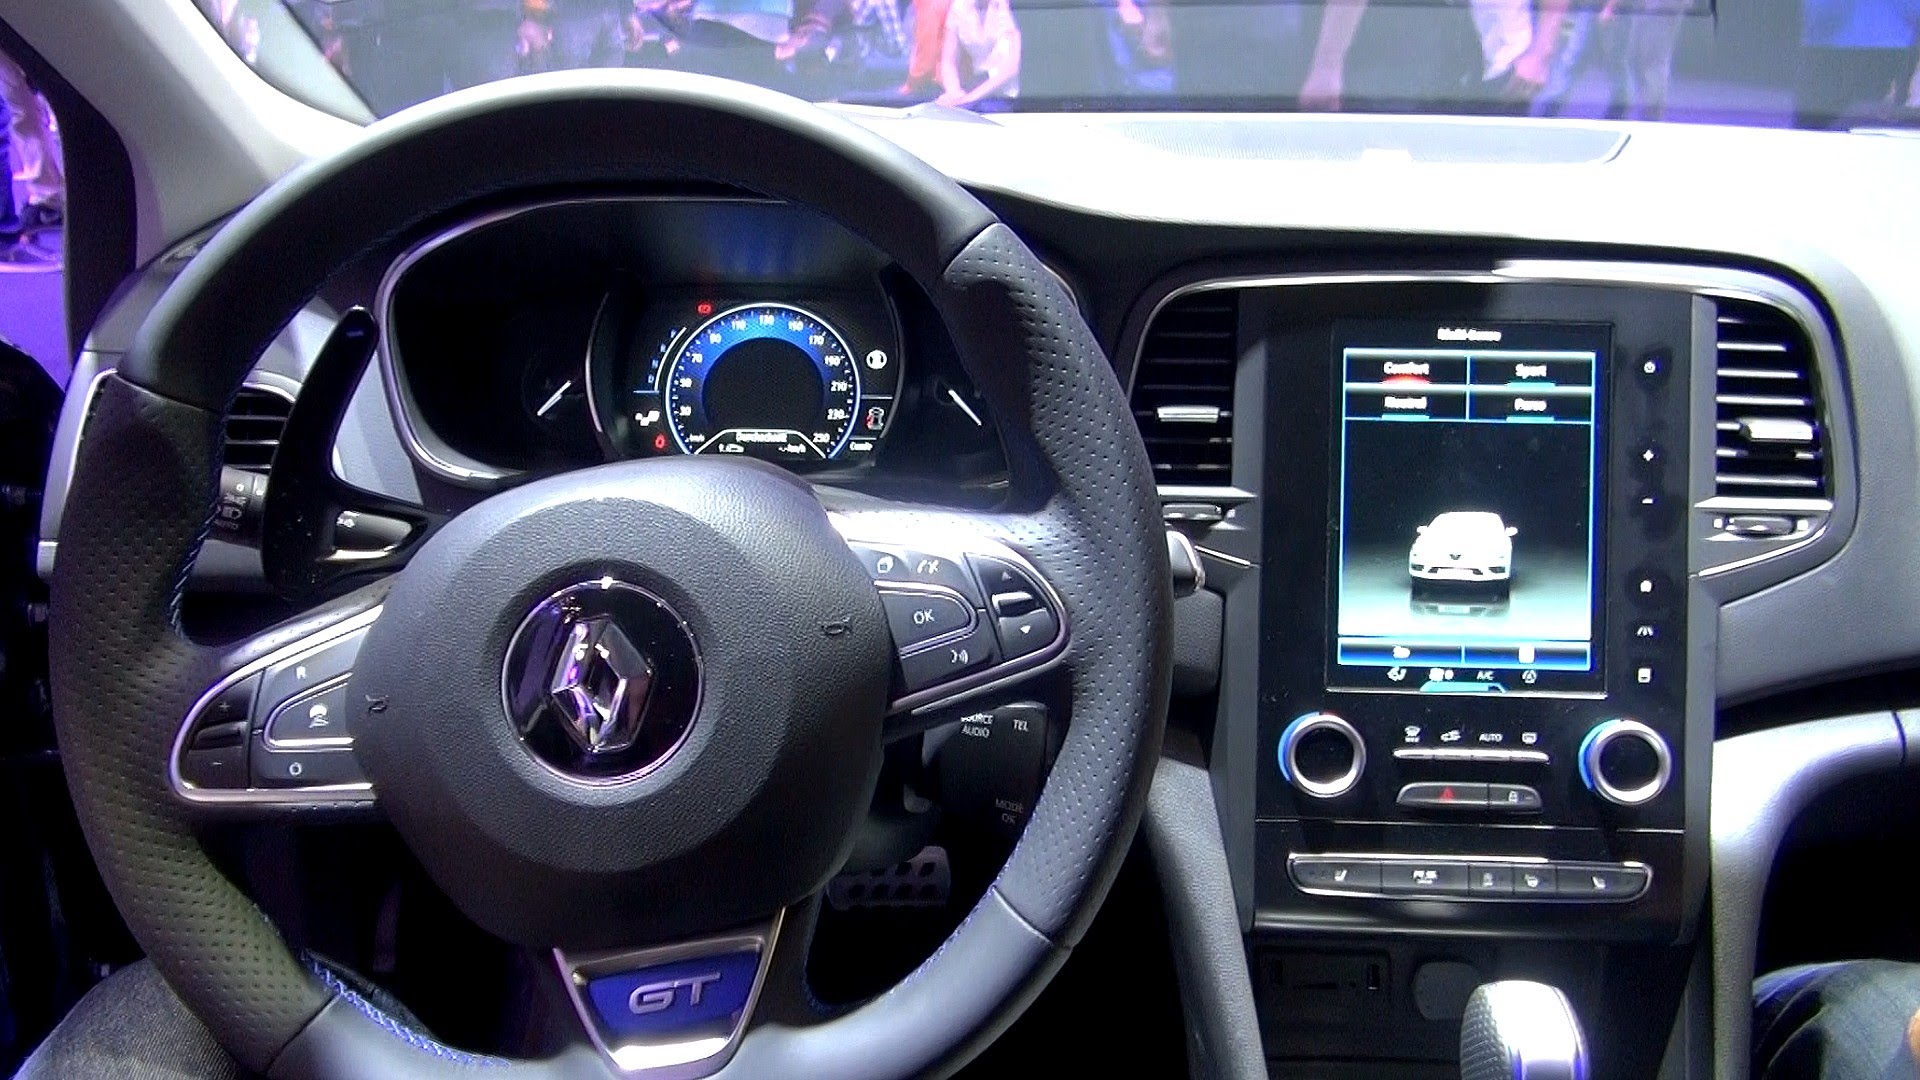 astonishing-design-of-the-black-and-purple-steering-wheels-added-with-black-dash-as-the-renault-megane-hatch-2016-interior